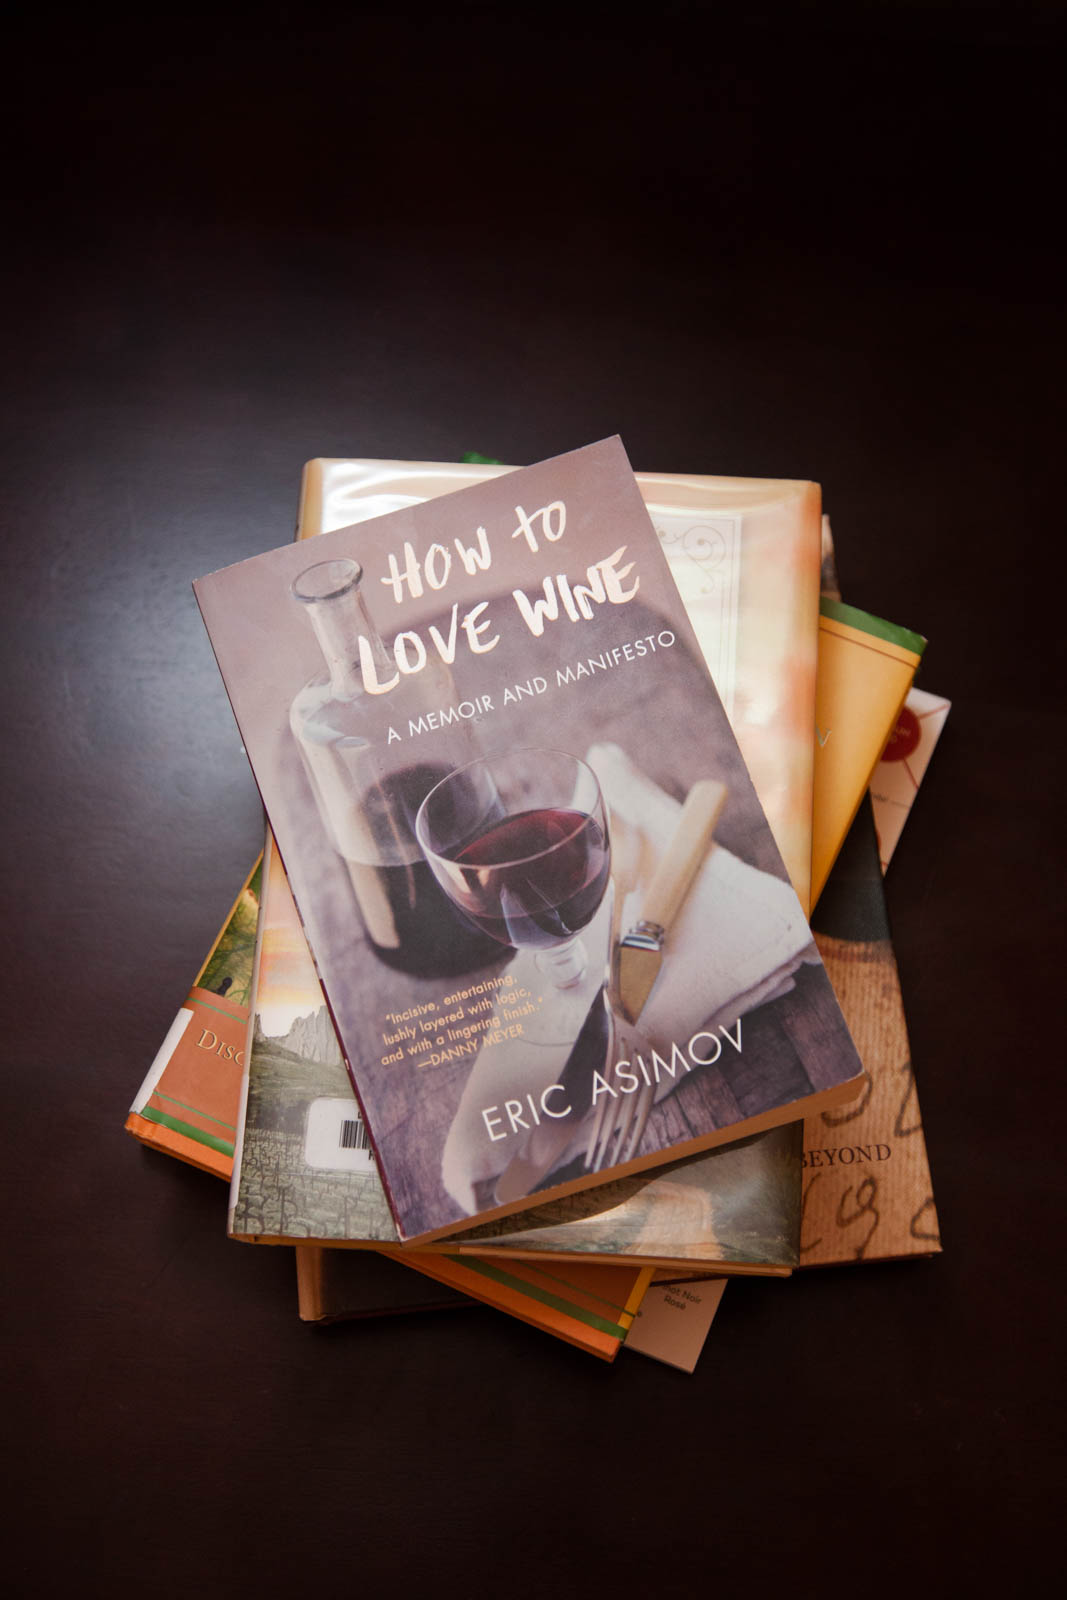 """How to Love Wine"" by Eric Asimov"